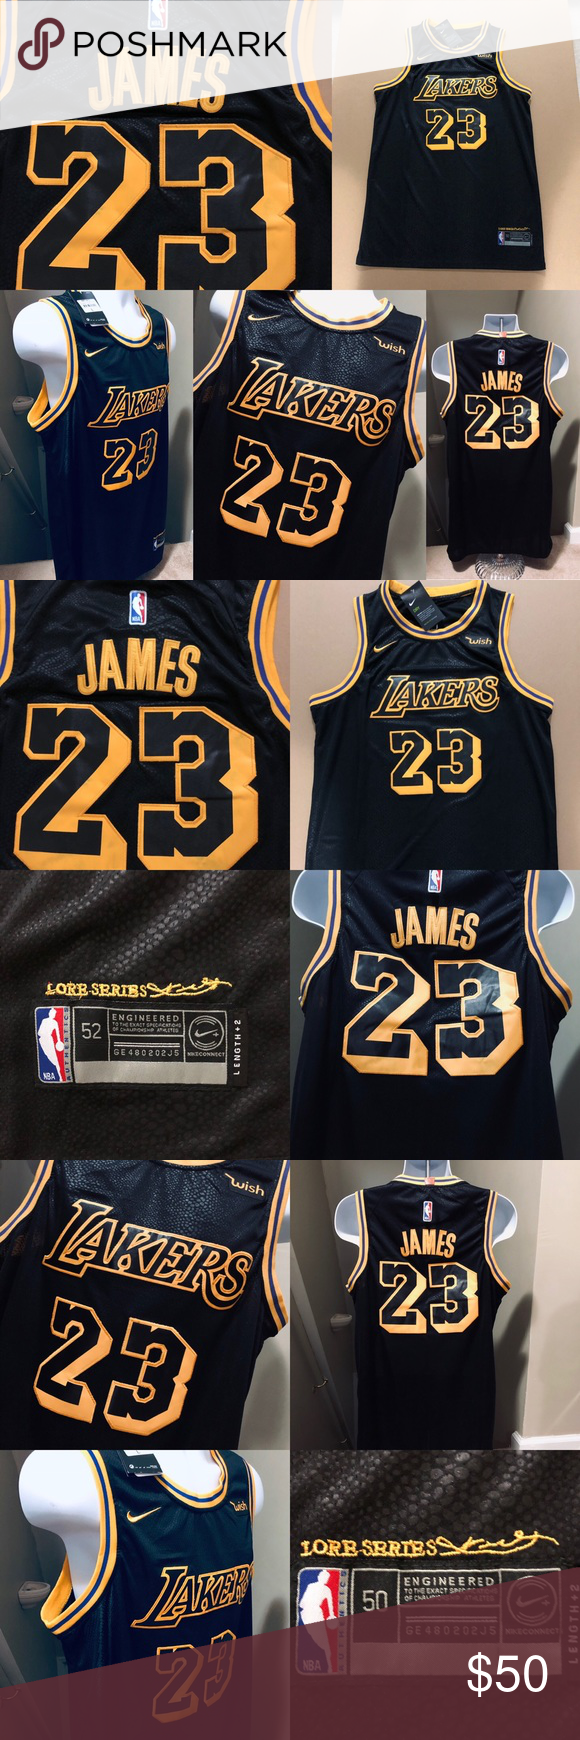 reputable site 6874a 88edc 🌲 LeBron James #23 LAKERS 2018 City Jersey 🏀 2018-2019 Los ...